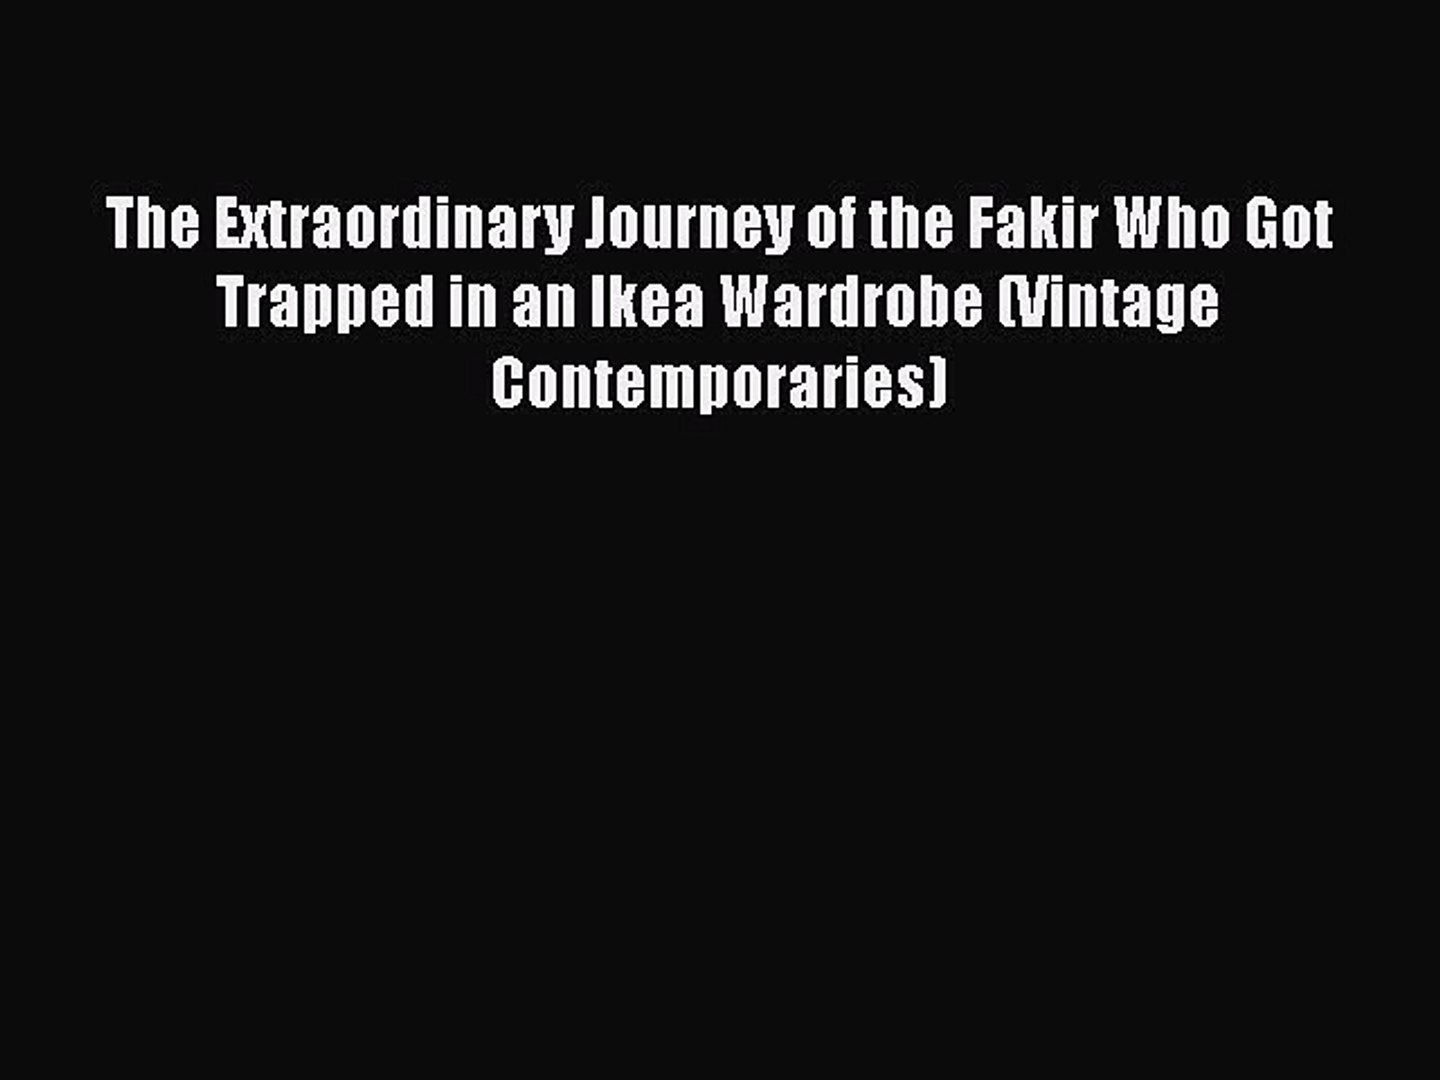 Ikea Wardrobe Qatar Pdf Download The Extraordinary Journey Of The Fakir Who Got Trapped In An Ikea Wardrobe Vintage